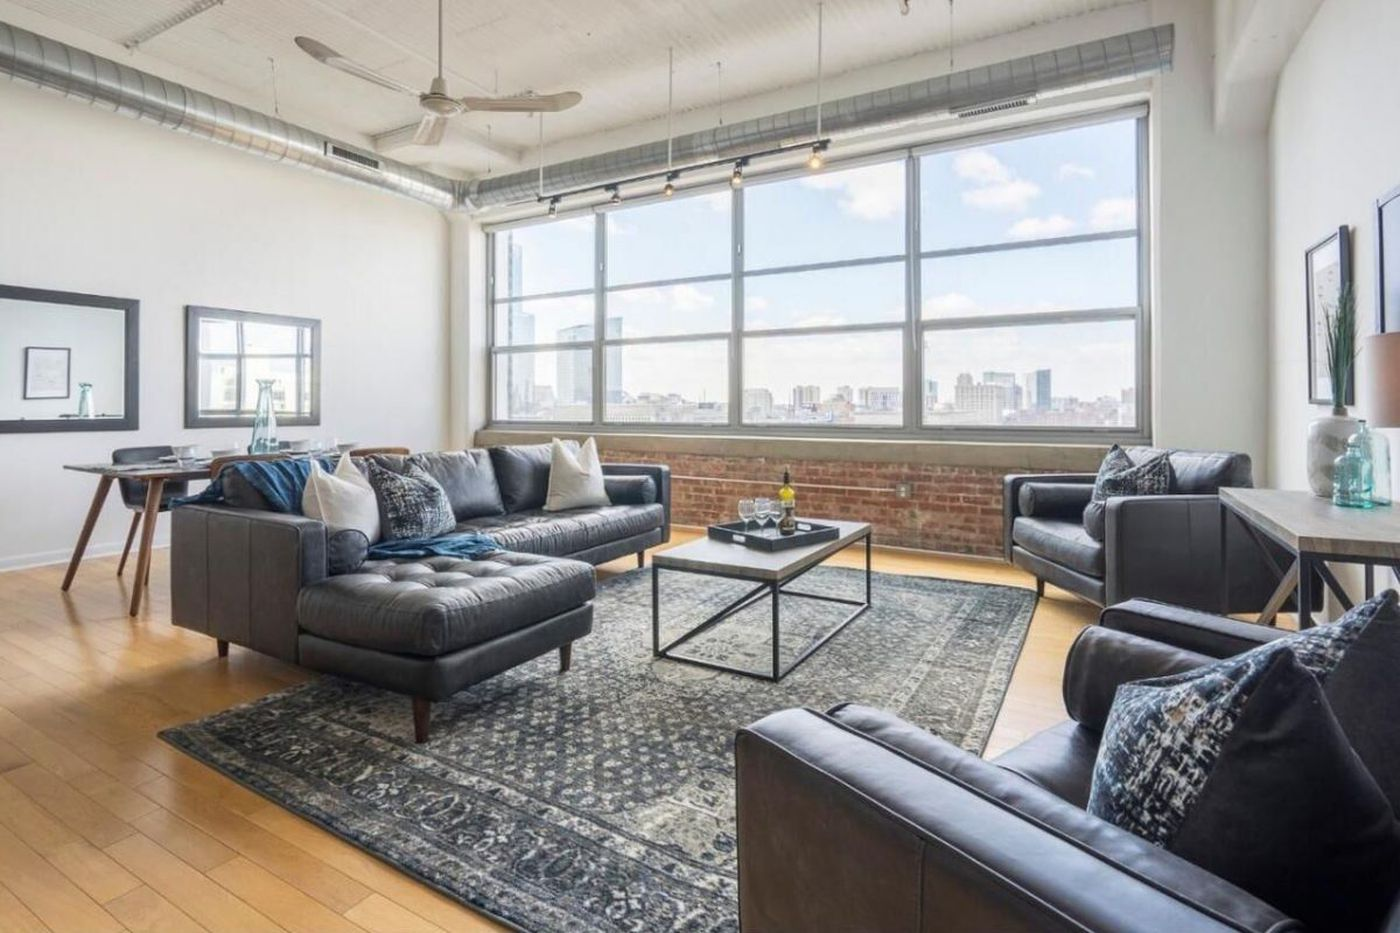 On the market in Philadelphia: Spacious one-bedroom loft with great sunset view